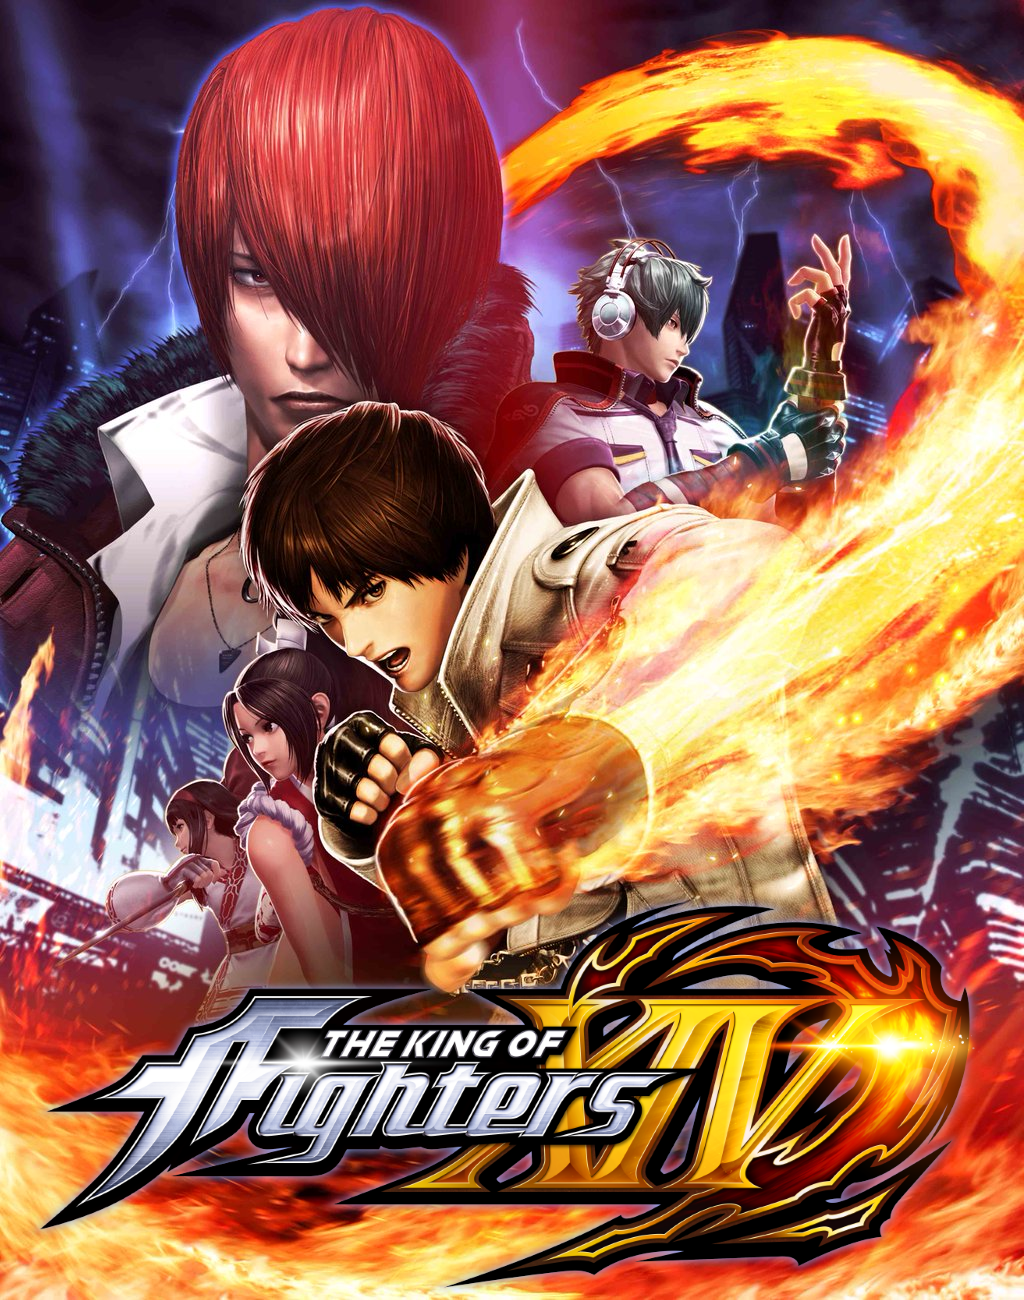 The King Of Fighters Xiv Snk Wiki Fandom His official nickname is the wolf's pedigree (狼の血統, ōkami no kettō). the king of fighters xiv snk wiki